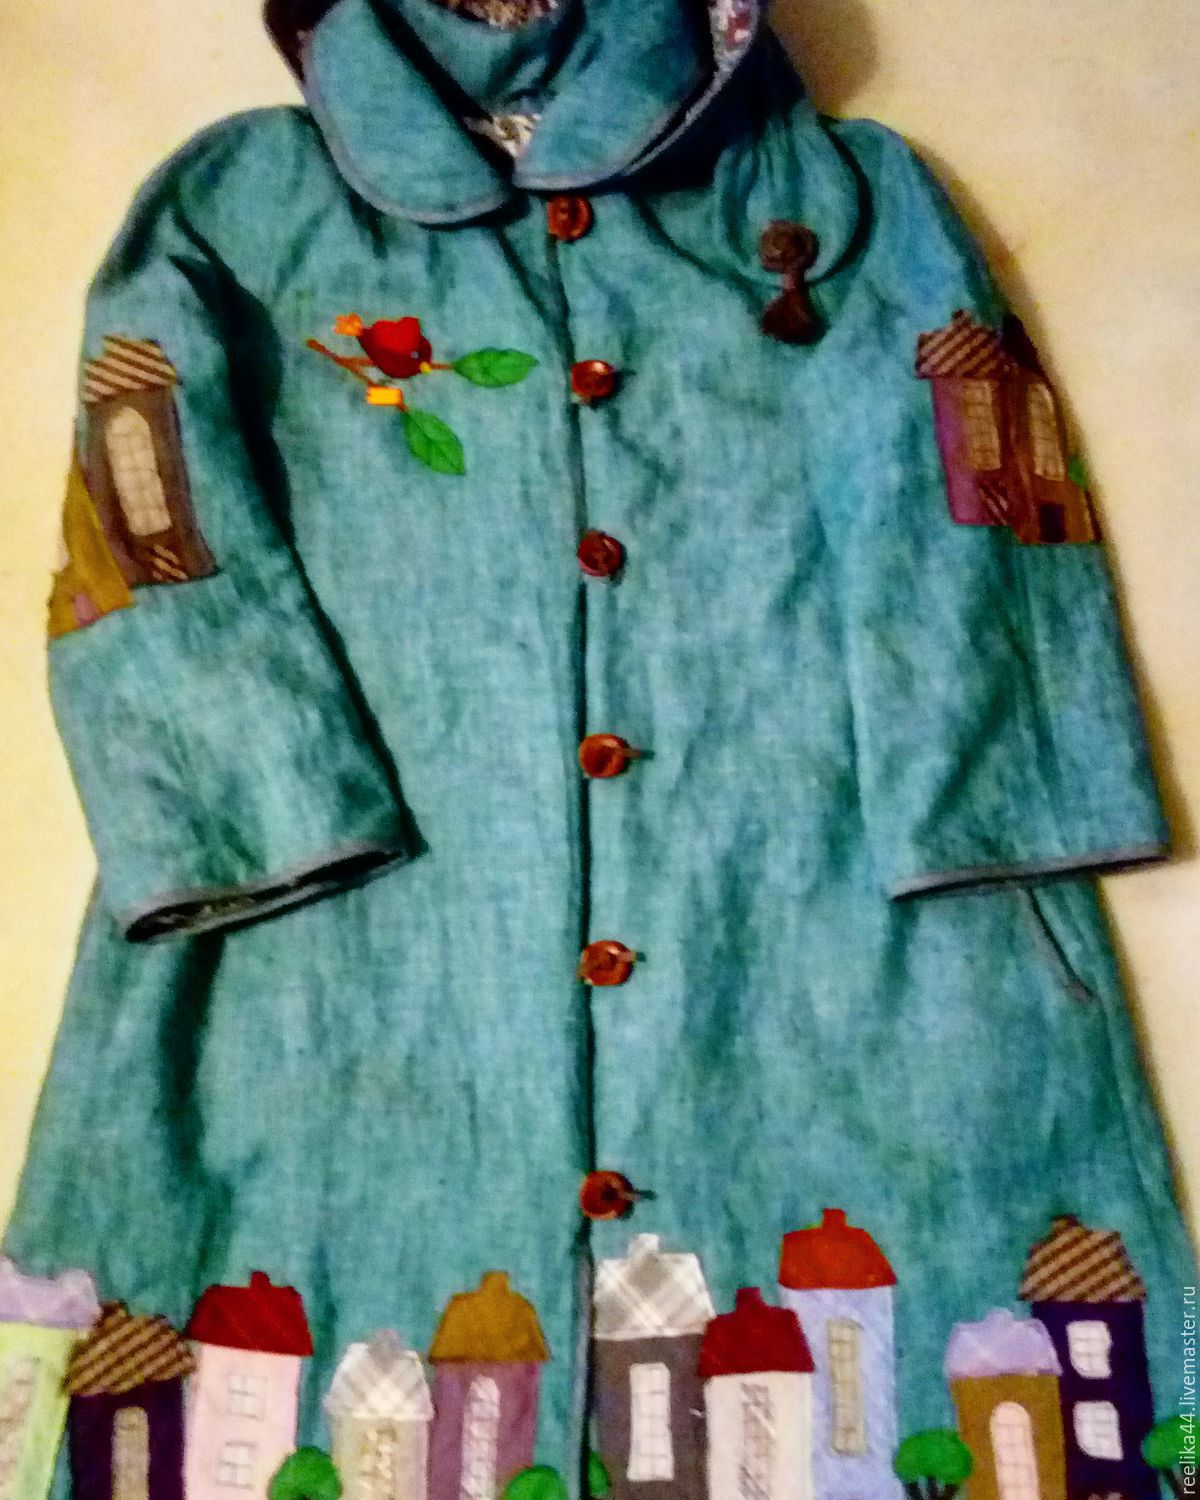 Coat linen ' Turquoise city', Coats, Stupino,  Фото №1